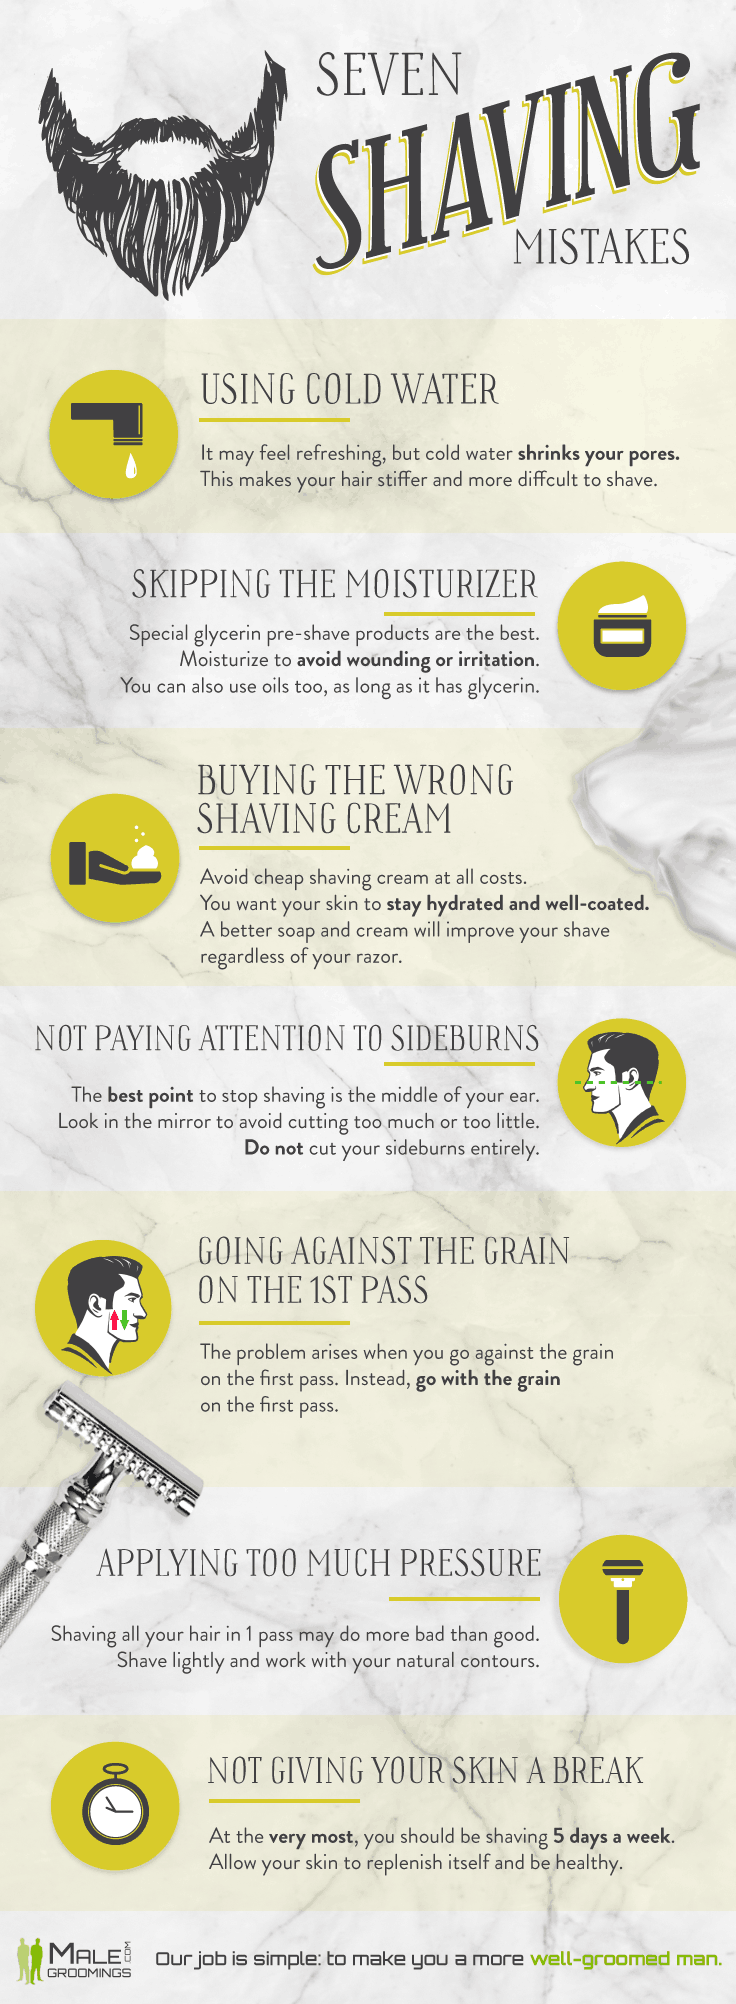 7 shaving mistakes infographic